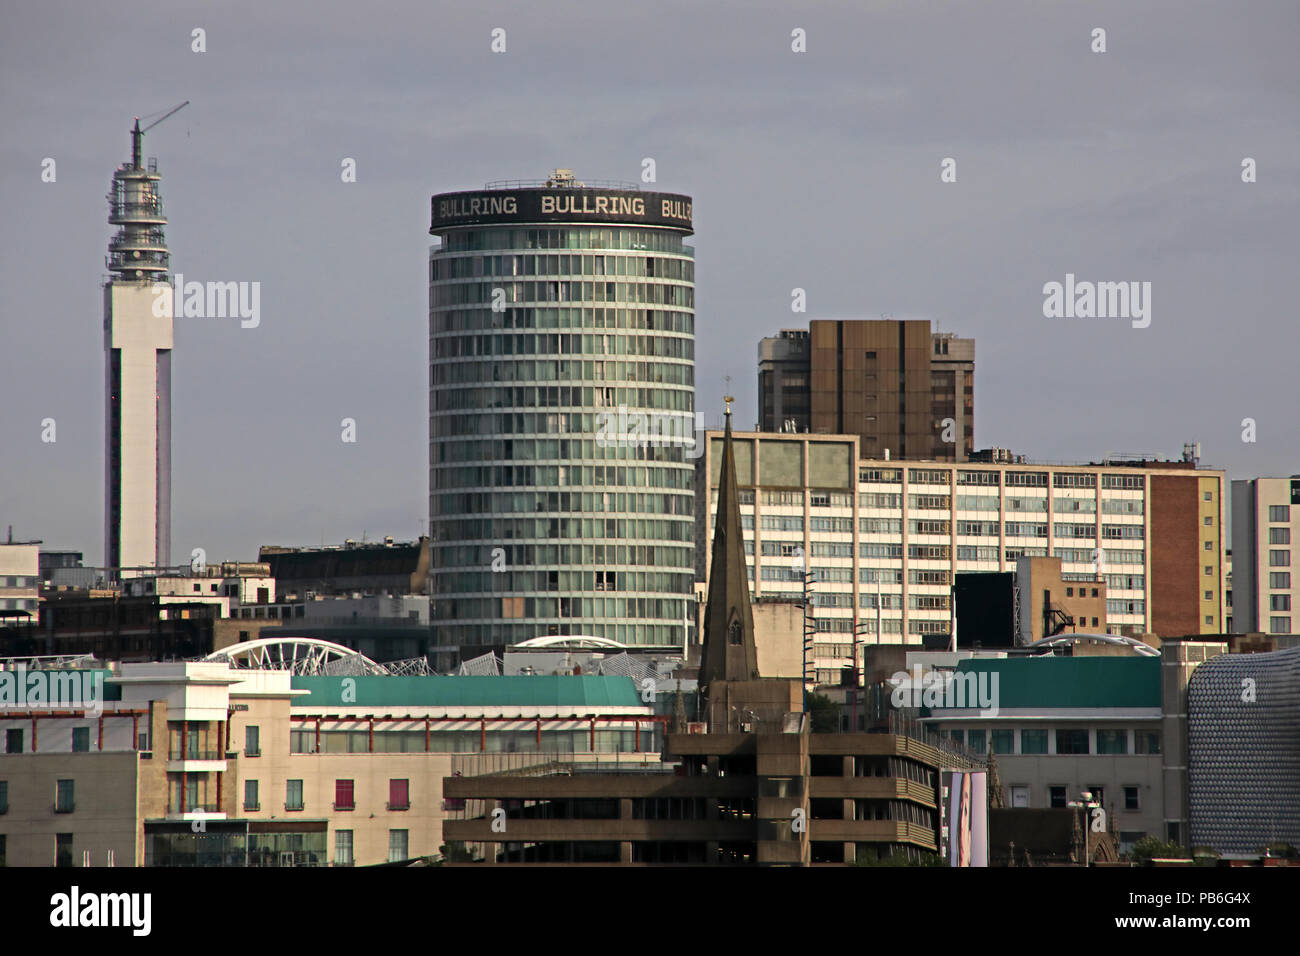 Birmingham City Centre Panoramic Skyline view, West Midlands, England, UK, from south of town - Stock Image